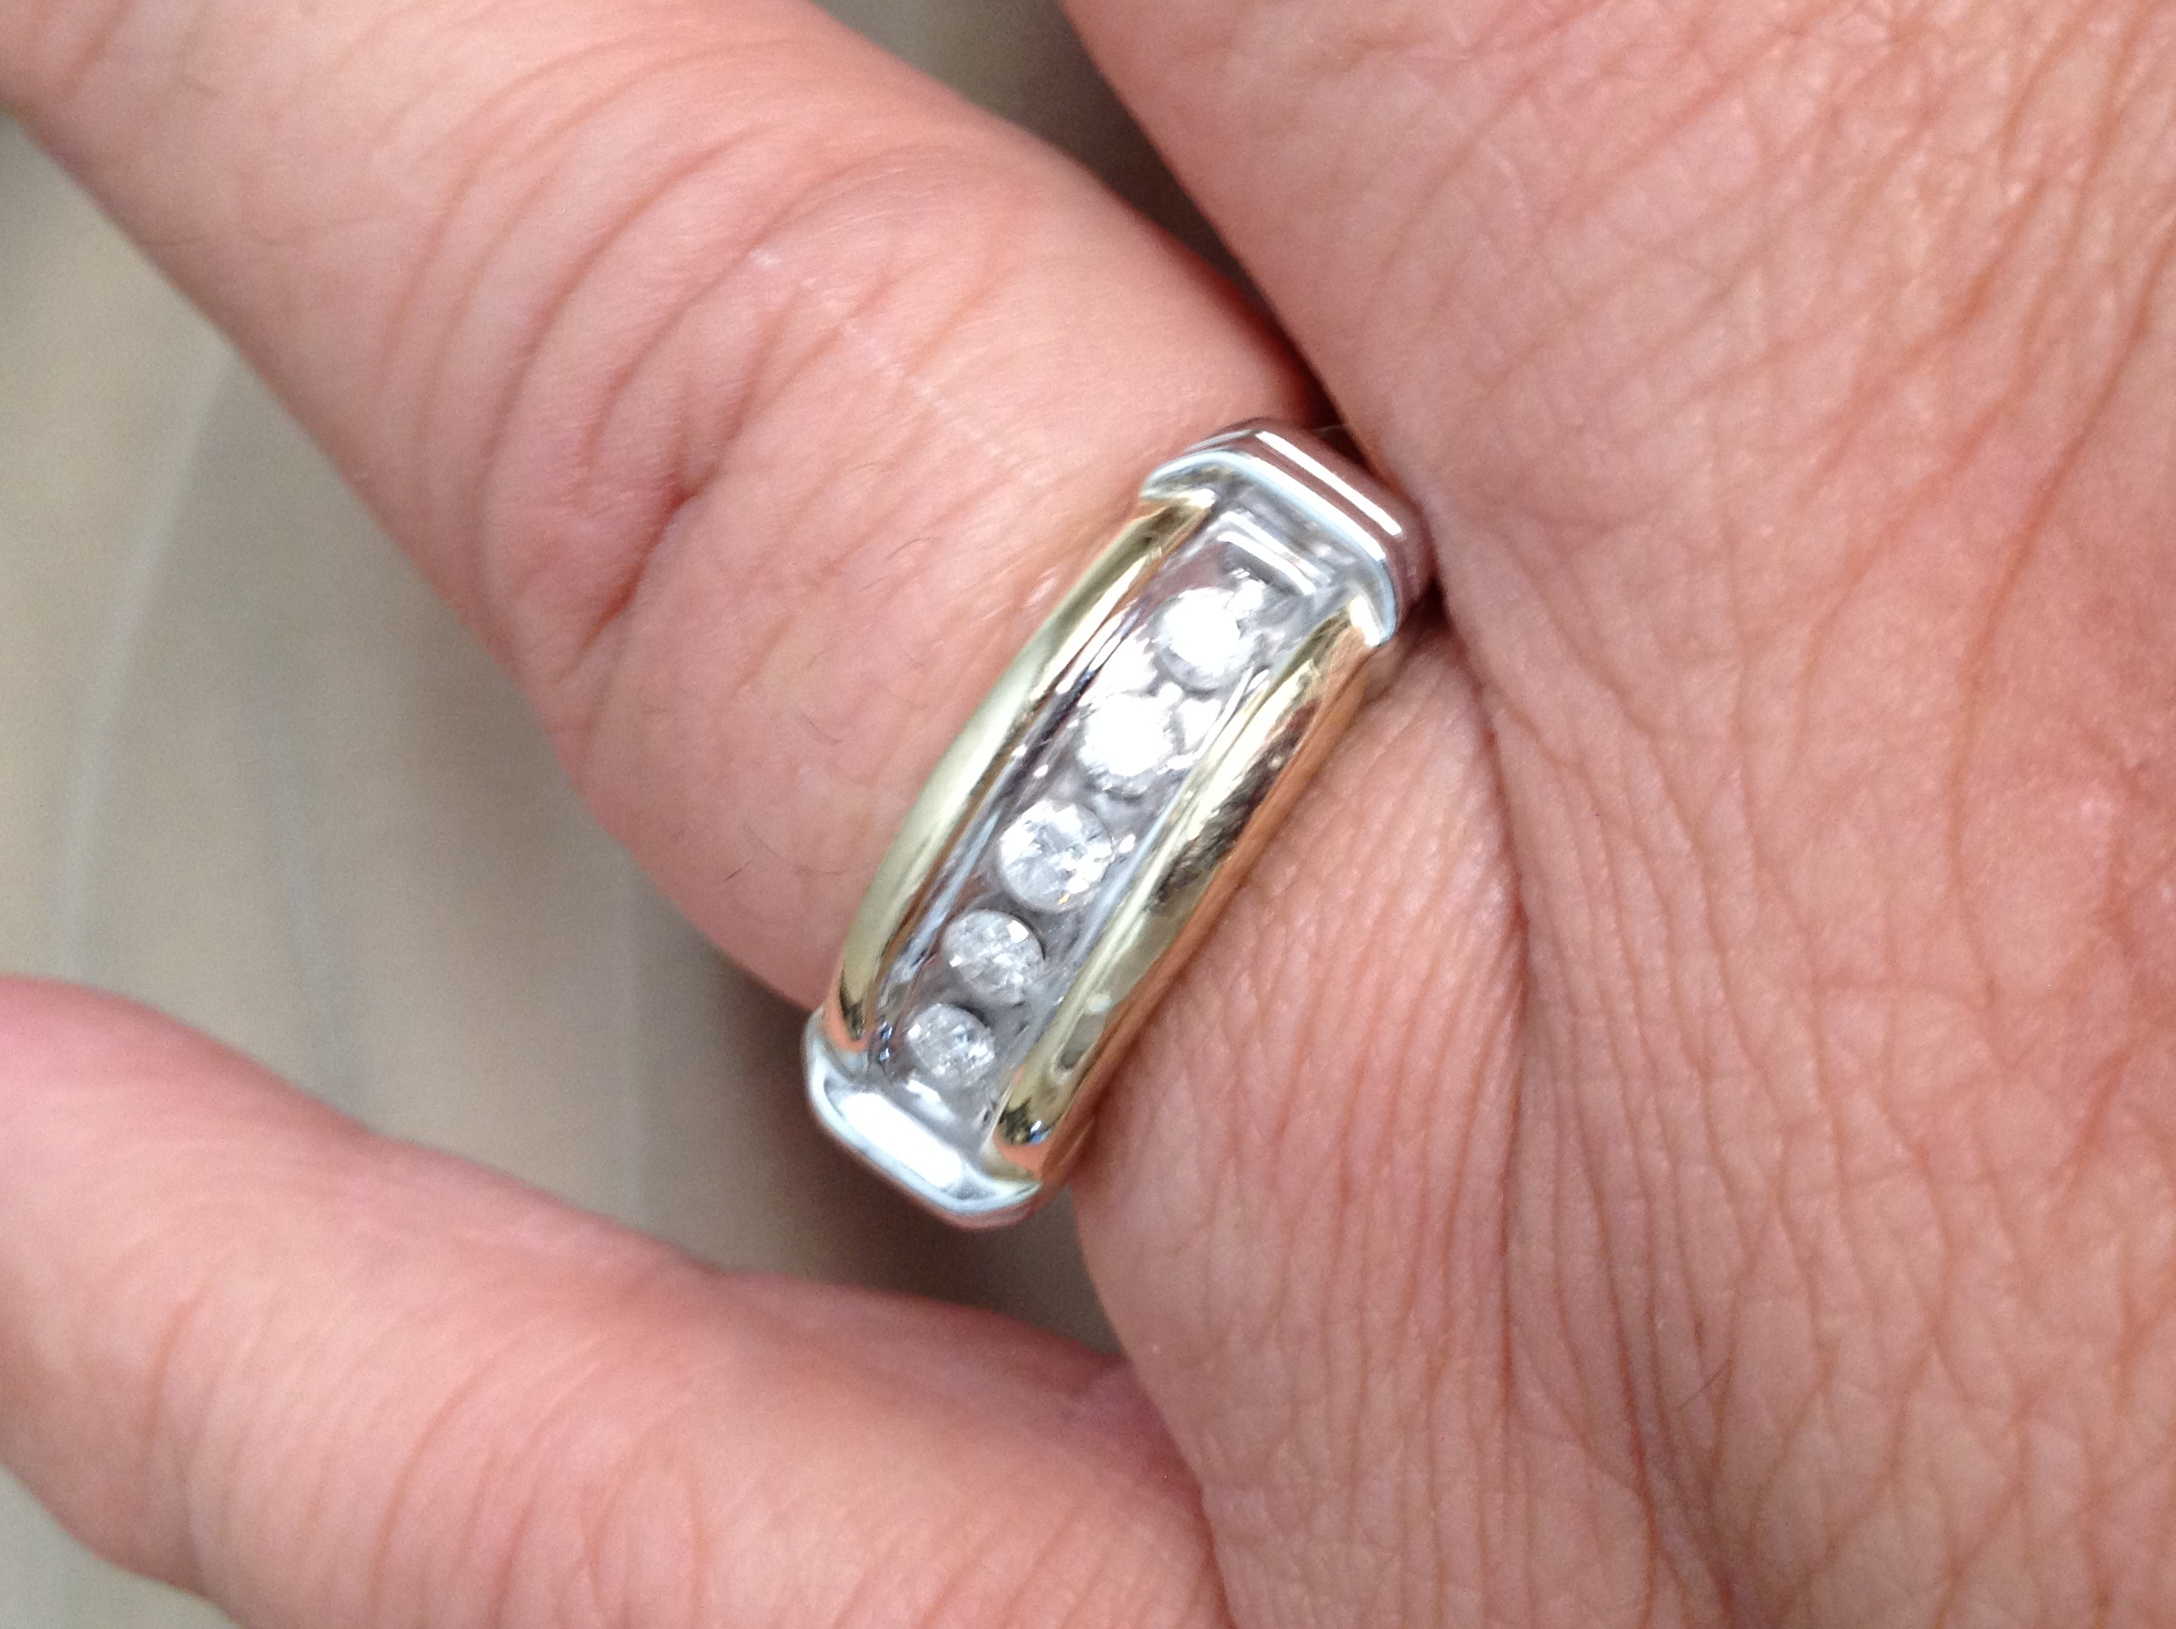 REVIEW: Peevey Jewelers…in Kensington | Quest4TheBest.org